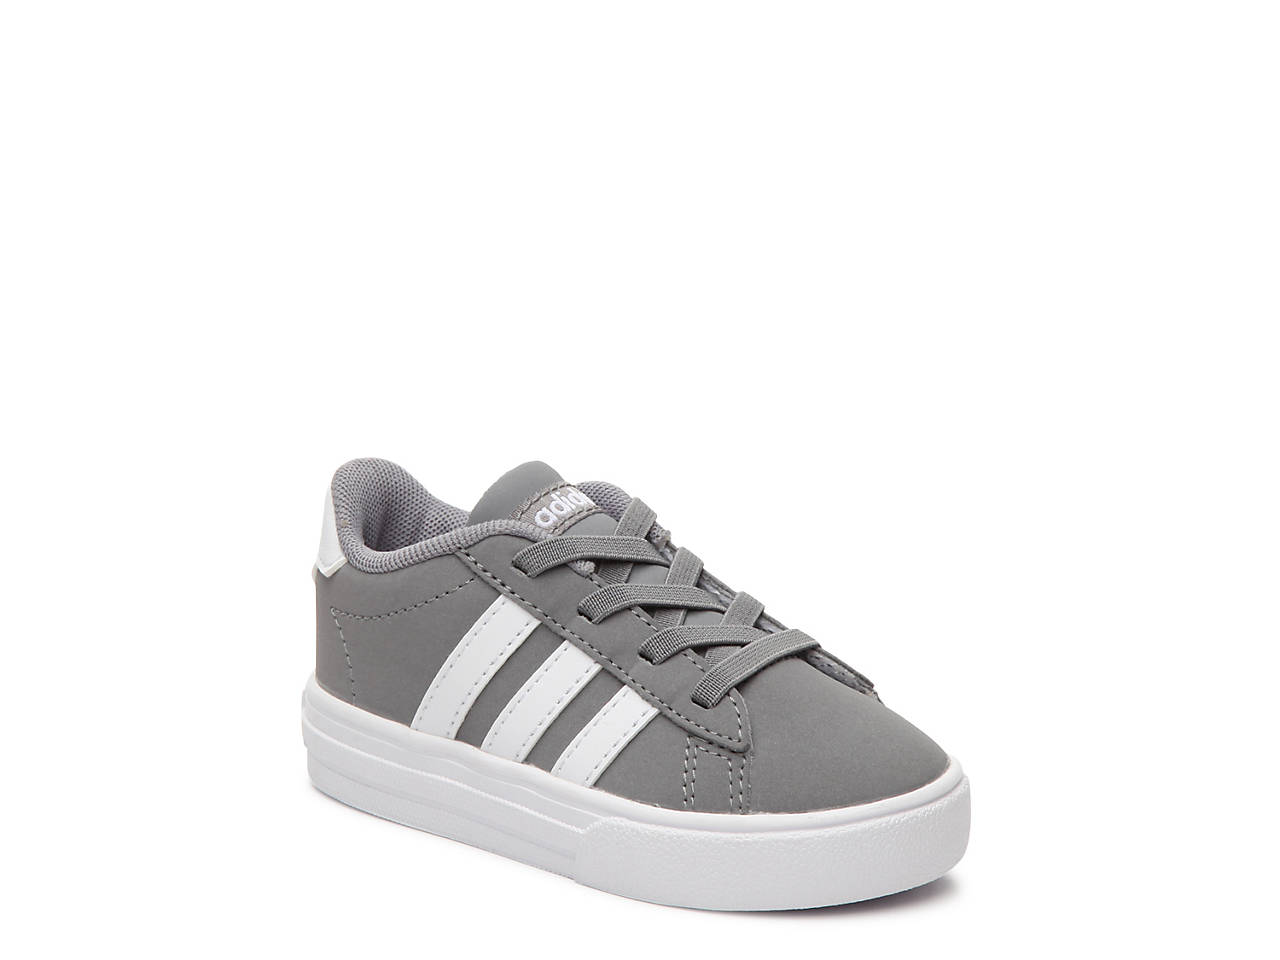 d66f62cc9d428b adidas Daily 2.0 Toddler Slip-On Sneaker Kids Shoes